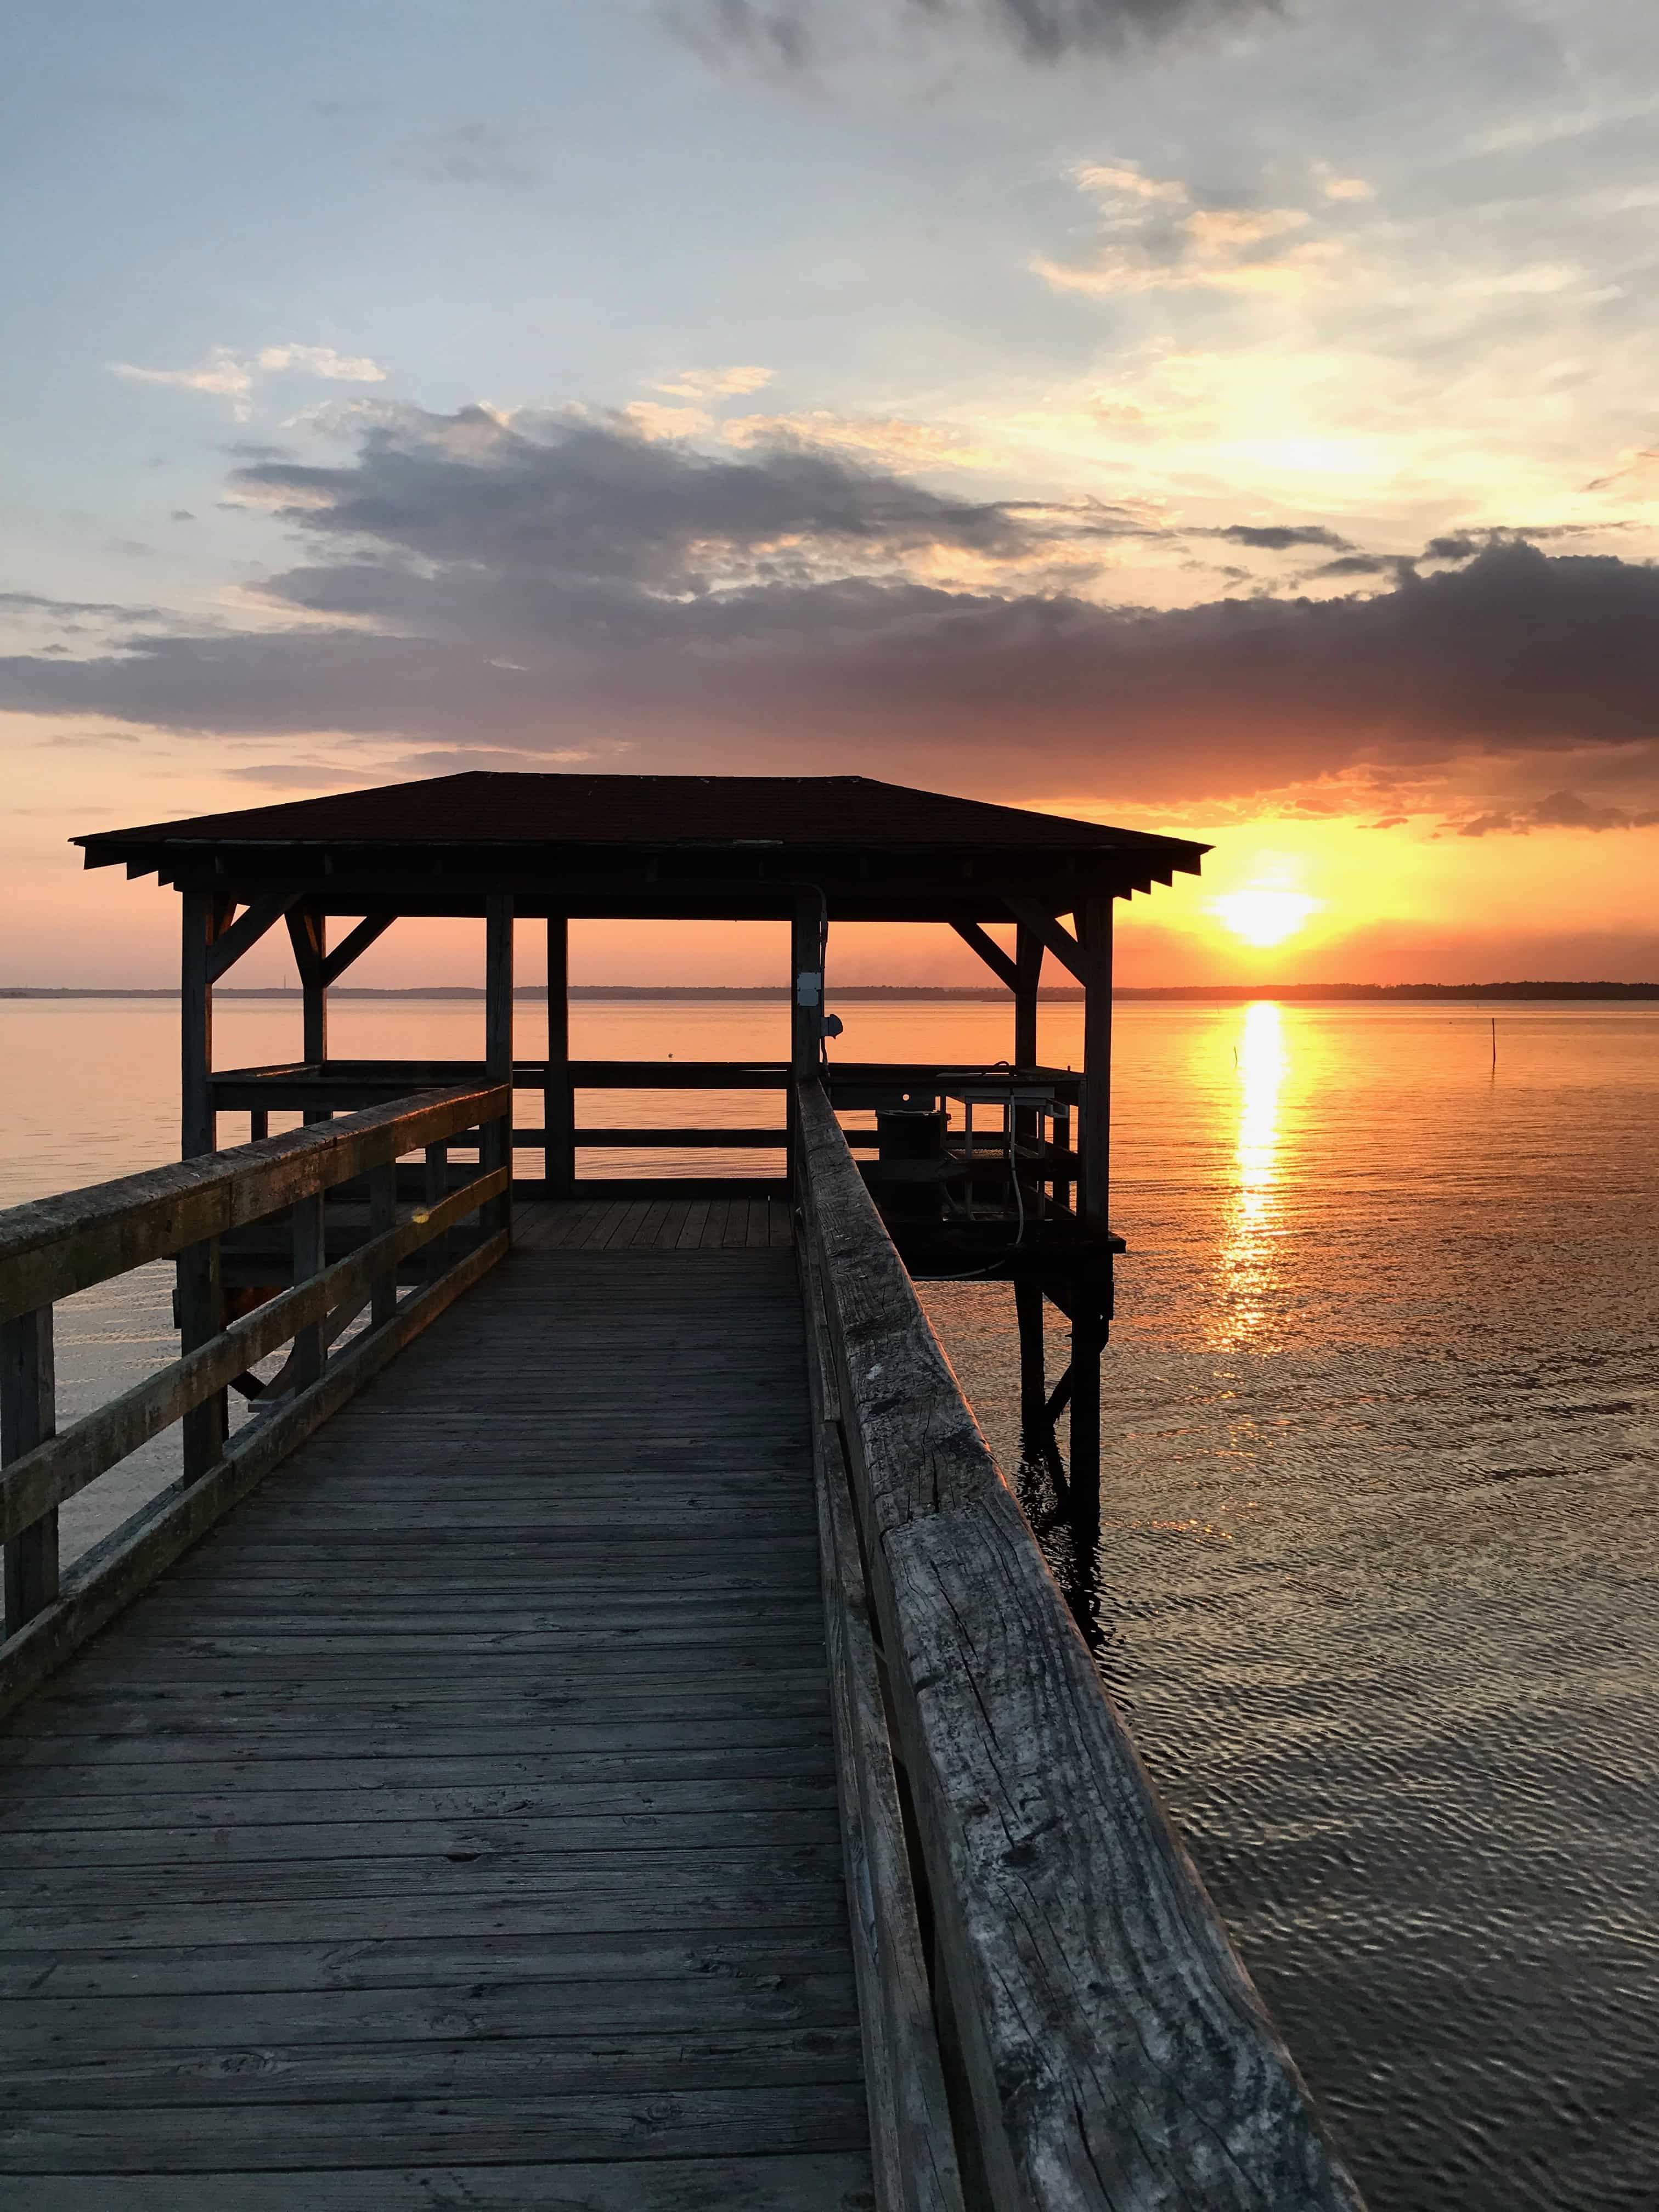 gazebo and pier on the sound at sunset